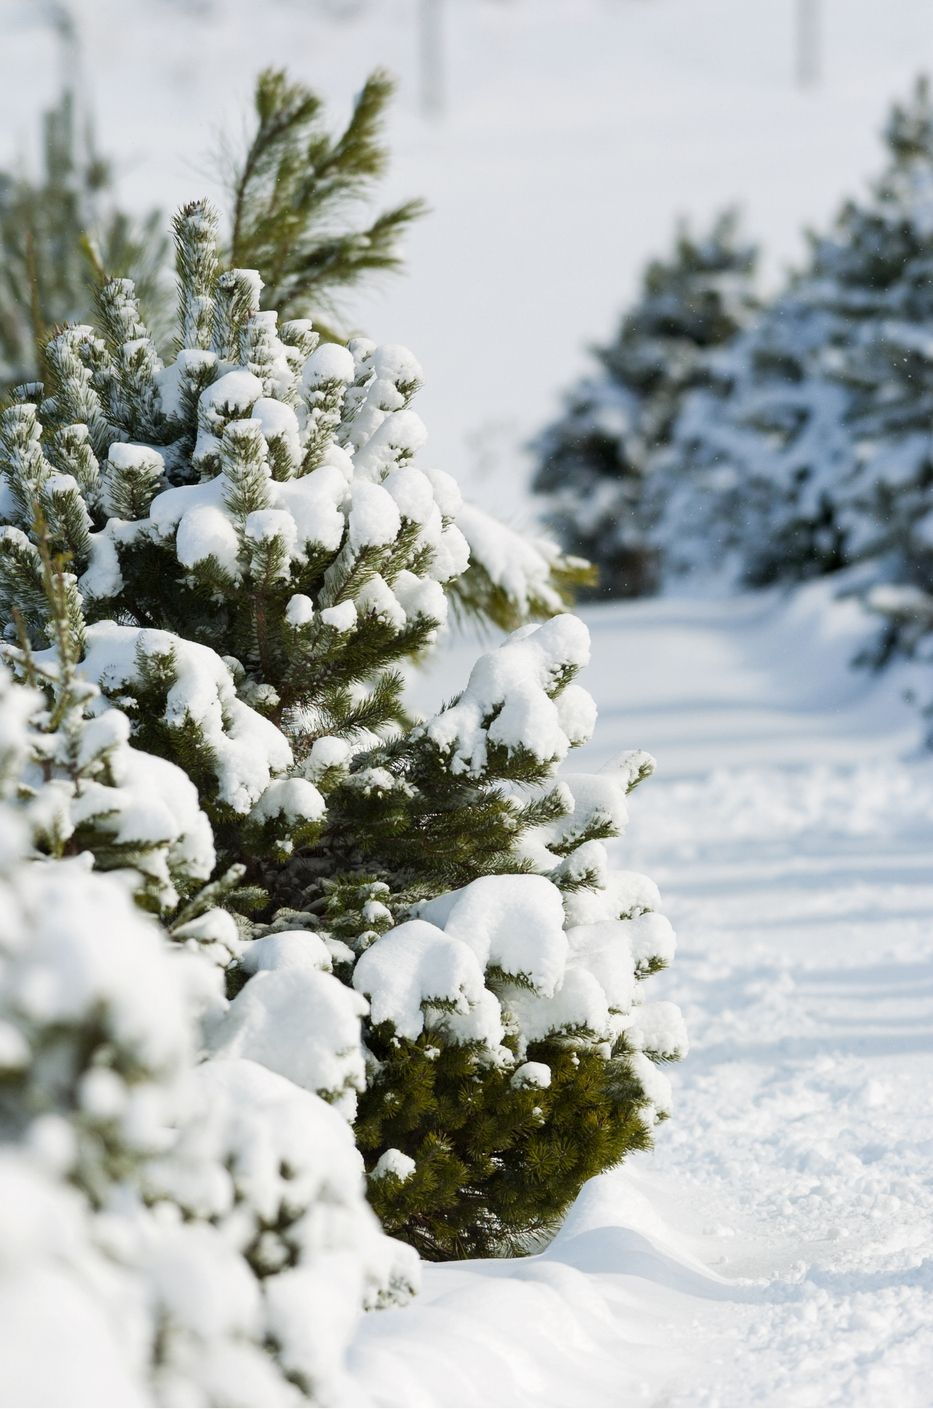 50 Best Christmas Tree Farms In America - Christmas Tree Farms Near Me